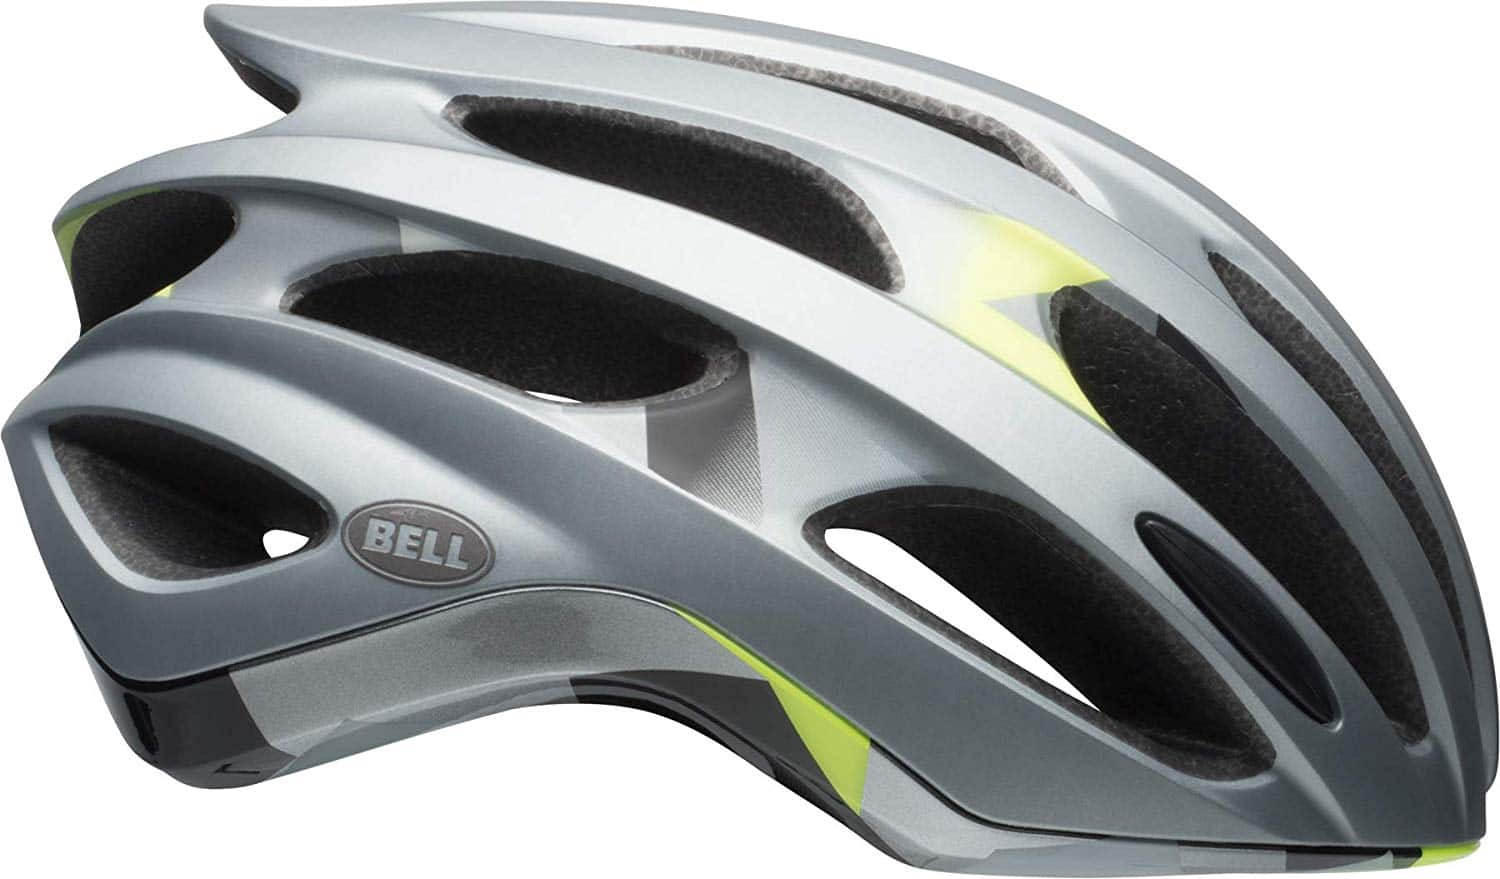 Bell Formula MIPS Adult Road Bike Helmet $25